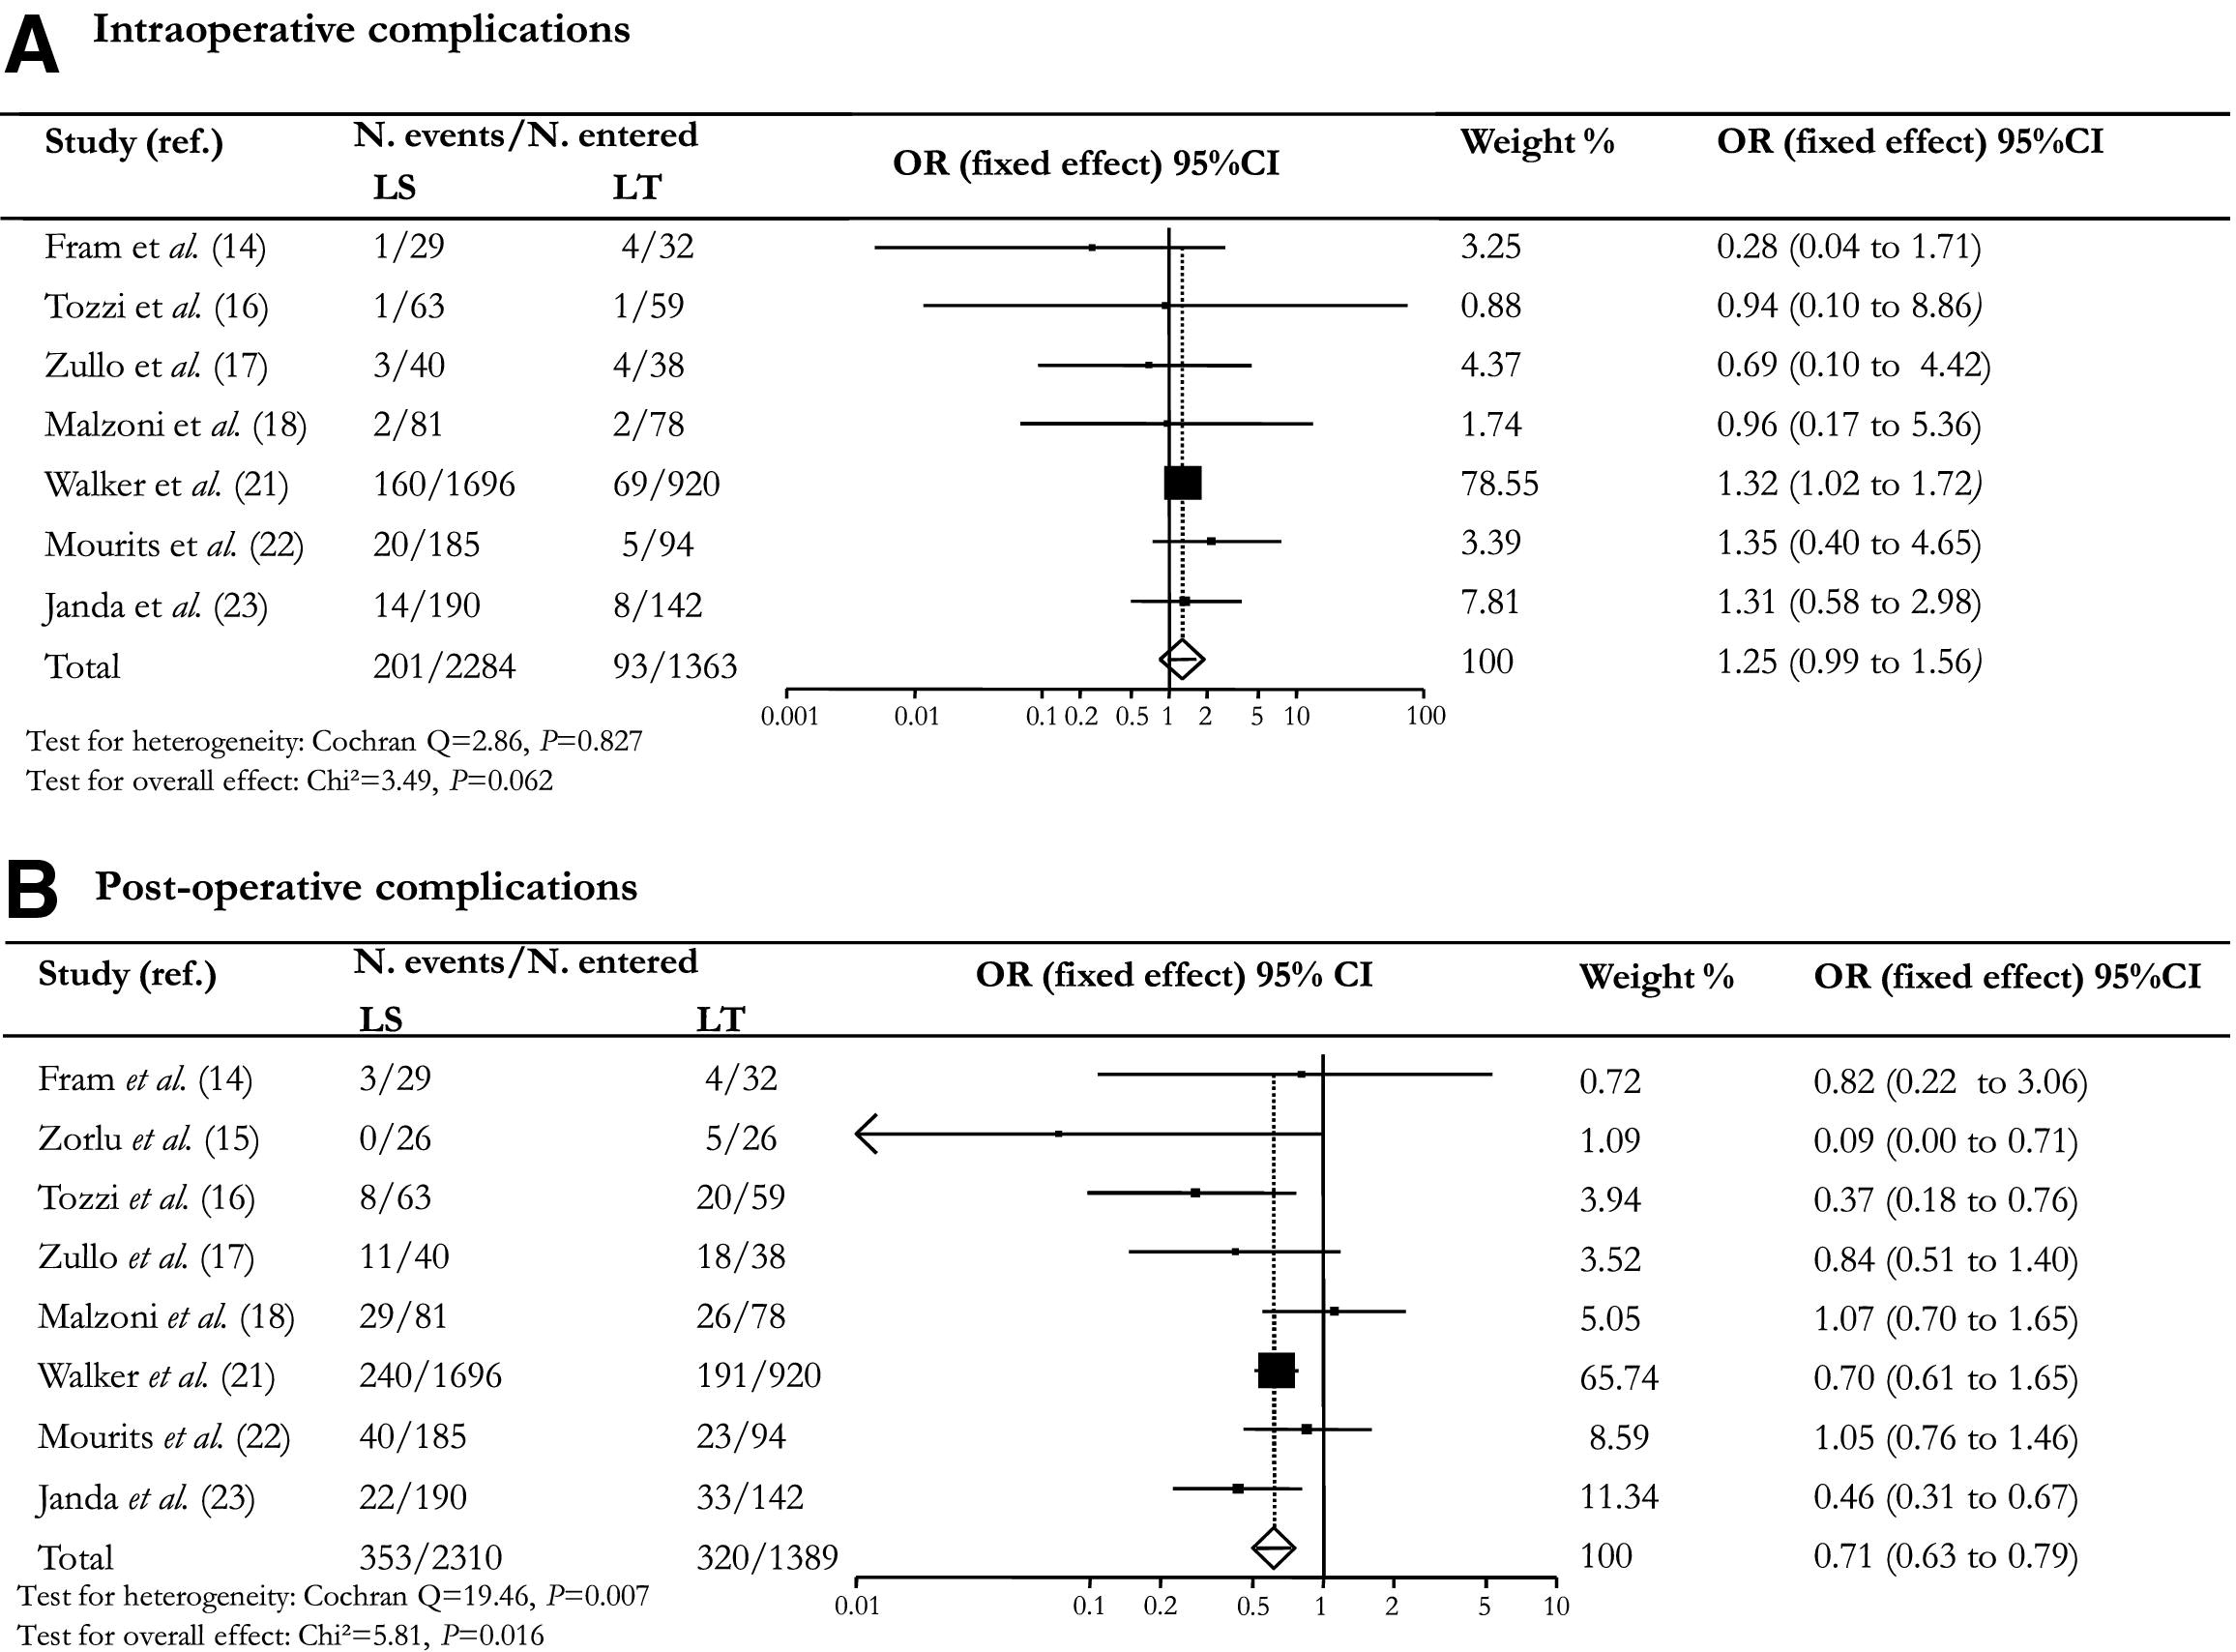 Safety Of Laparoscopy Vs Laparotomy In The Surgical Staging Of Endometrial Cancer A Systematic